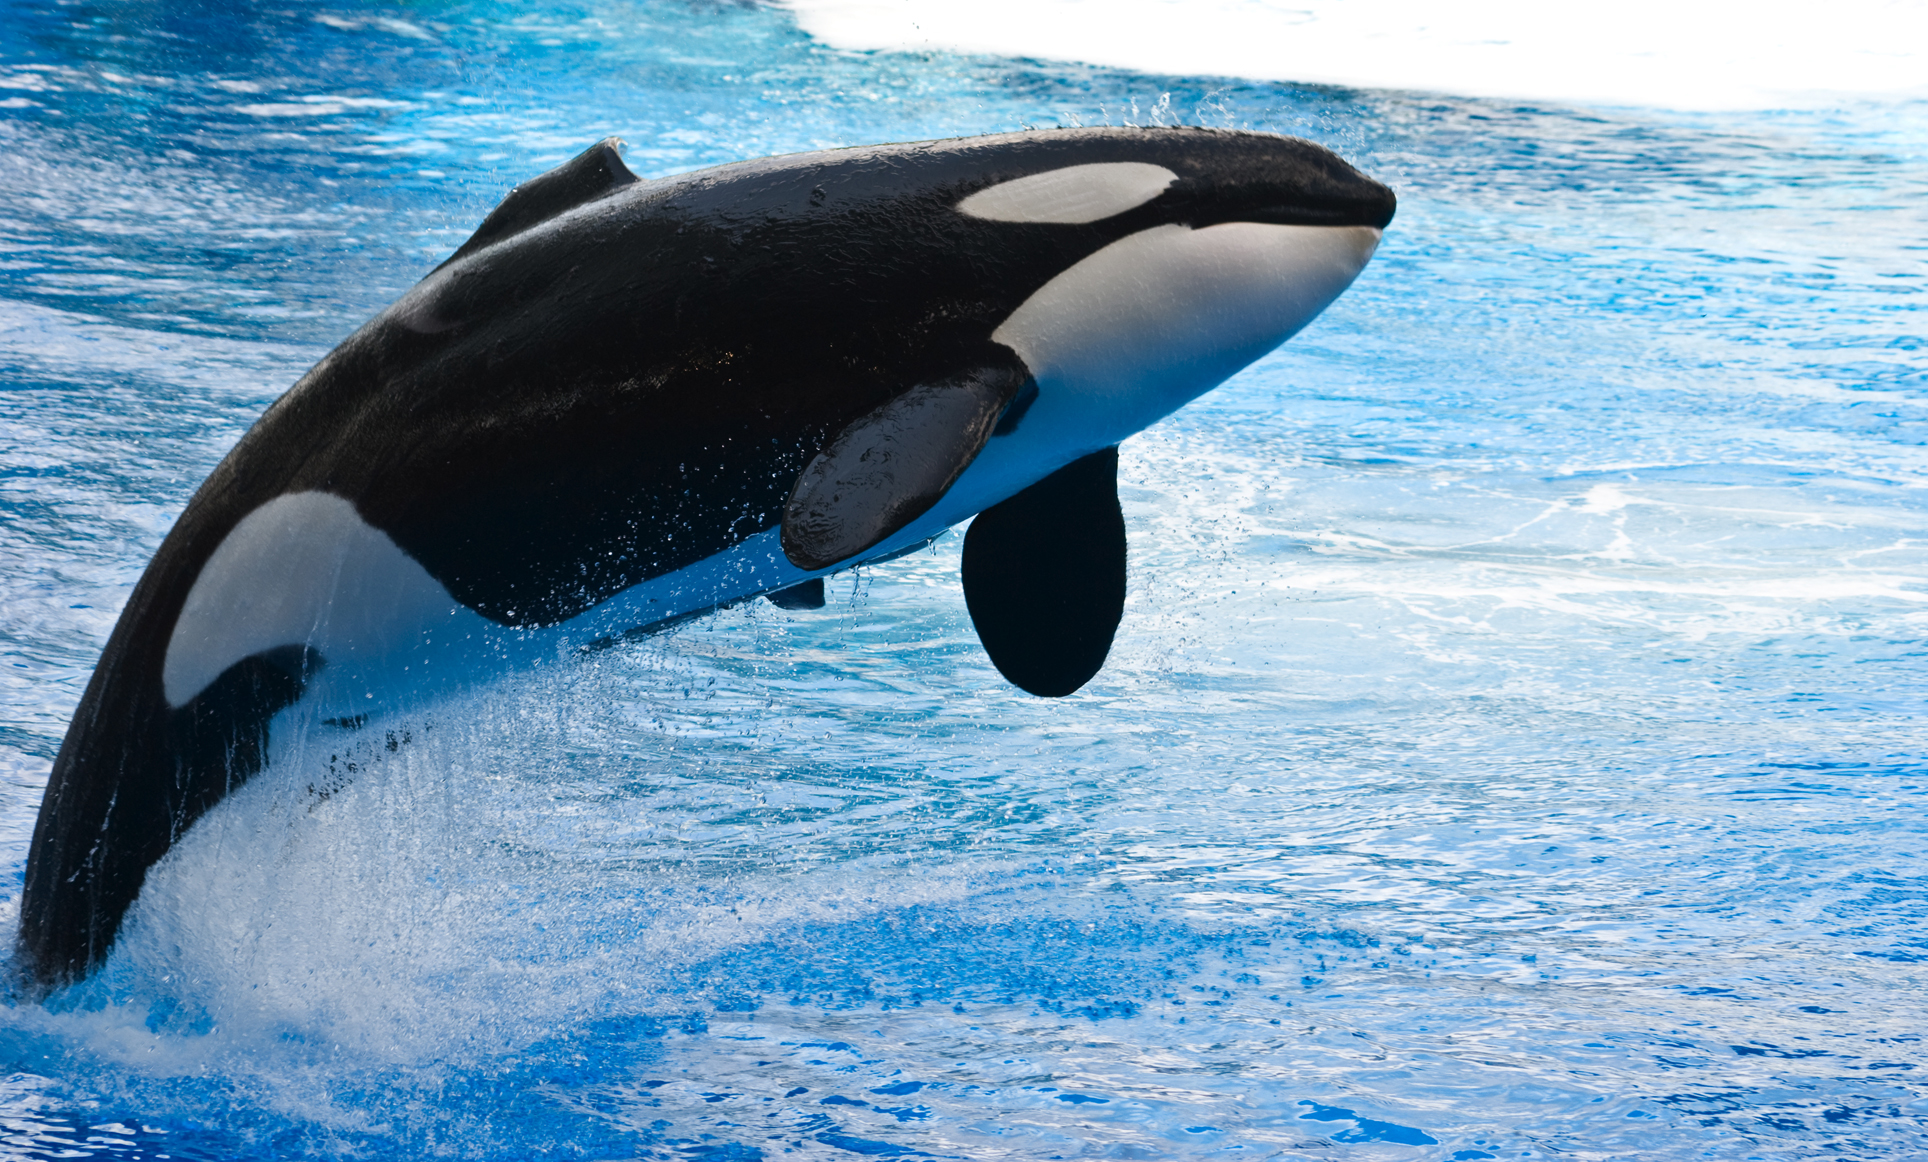 Orca the killer whale movie - photo#9